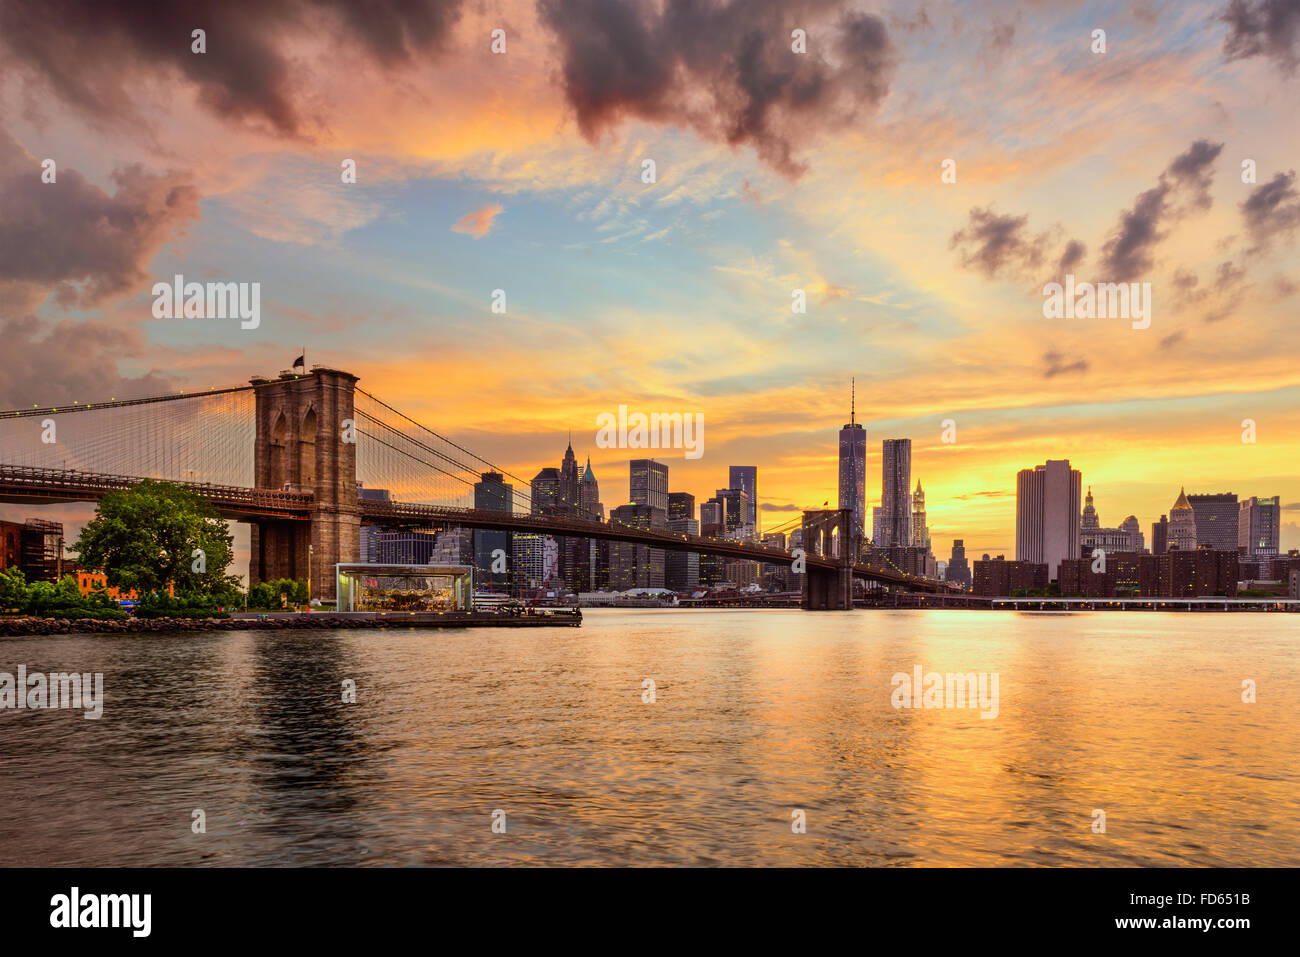 New York City, USA skyline from the East River and Brooklyn Bridge. - Stock Image